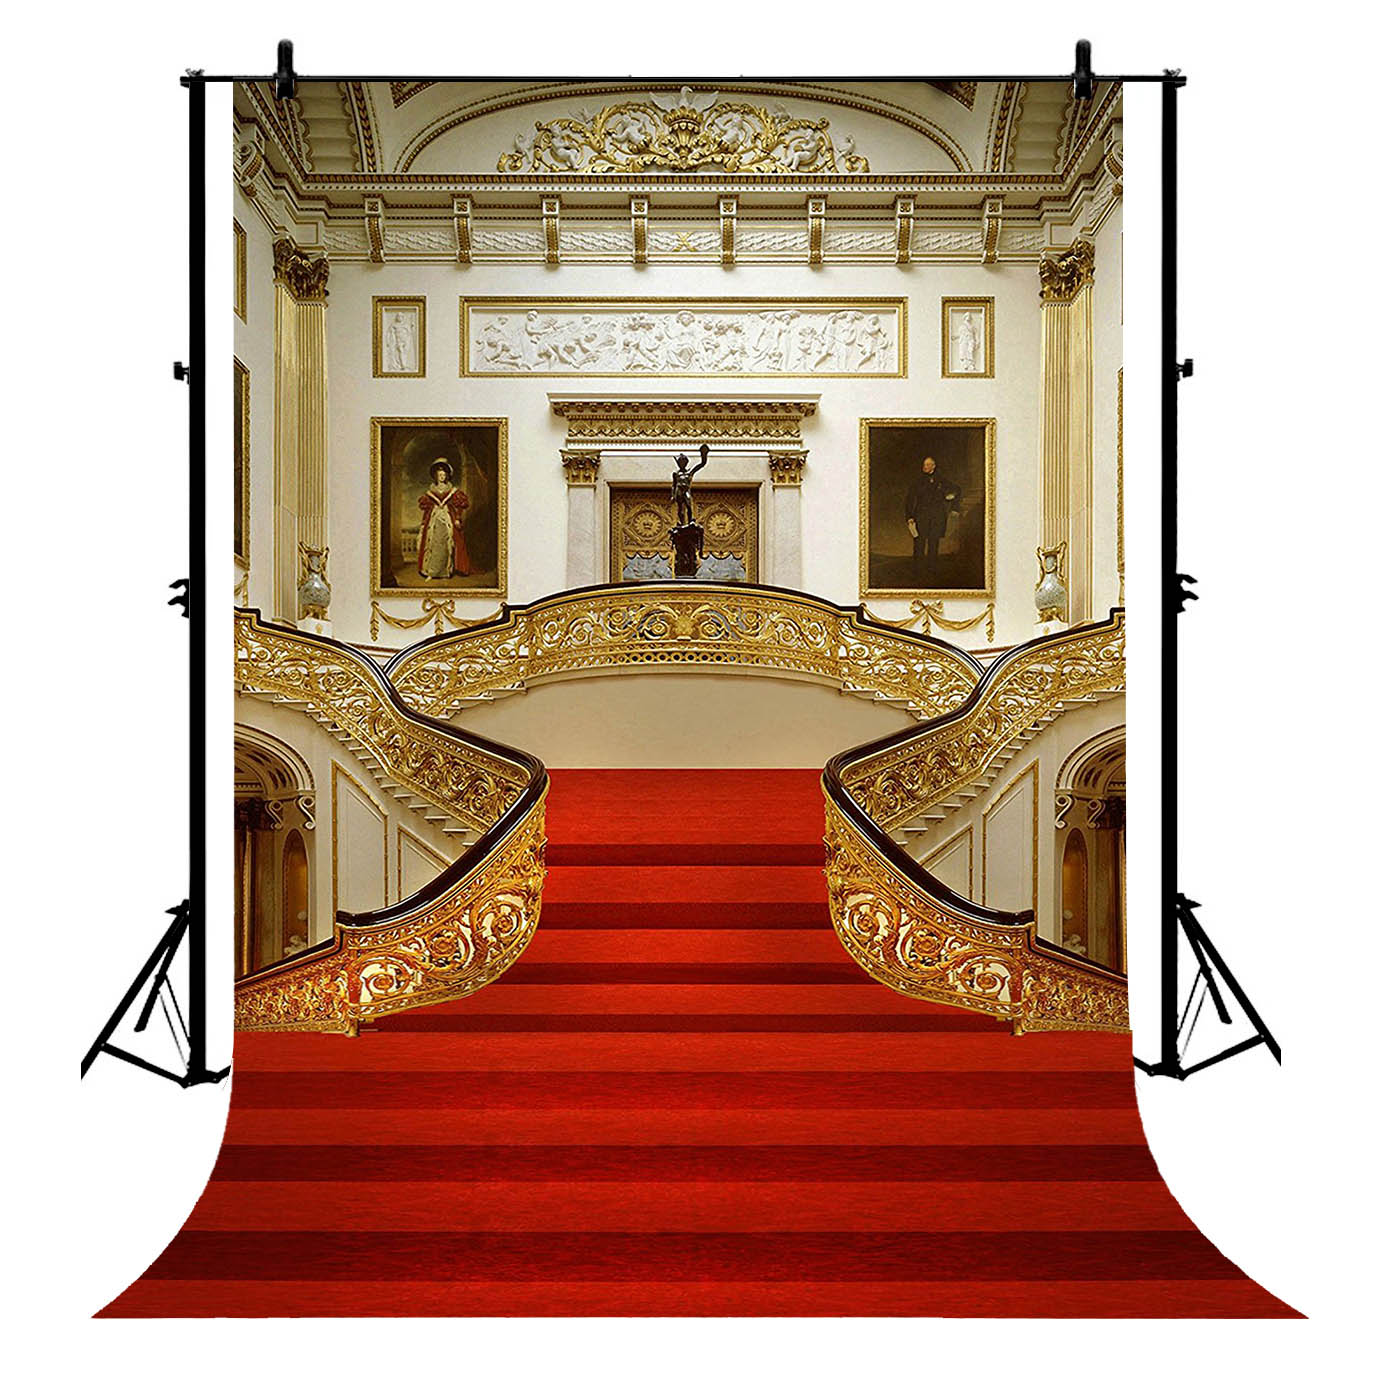 5x7ft Palace Red Carpet Vintage Stair Polyester Photo Background Portrait Backdrop